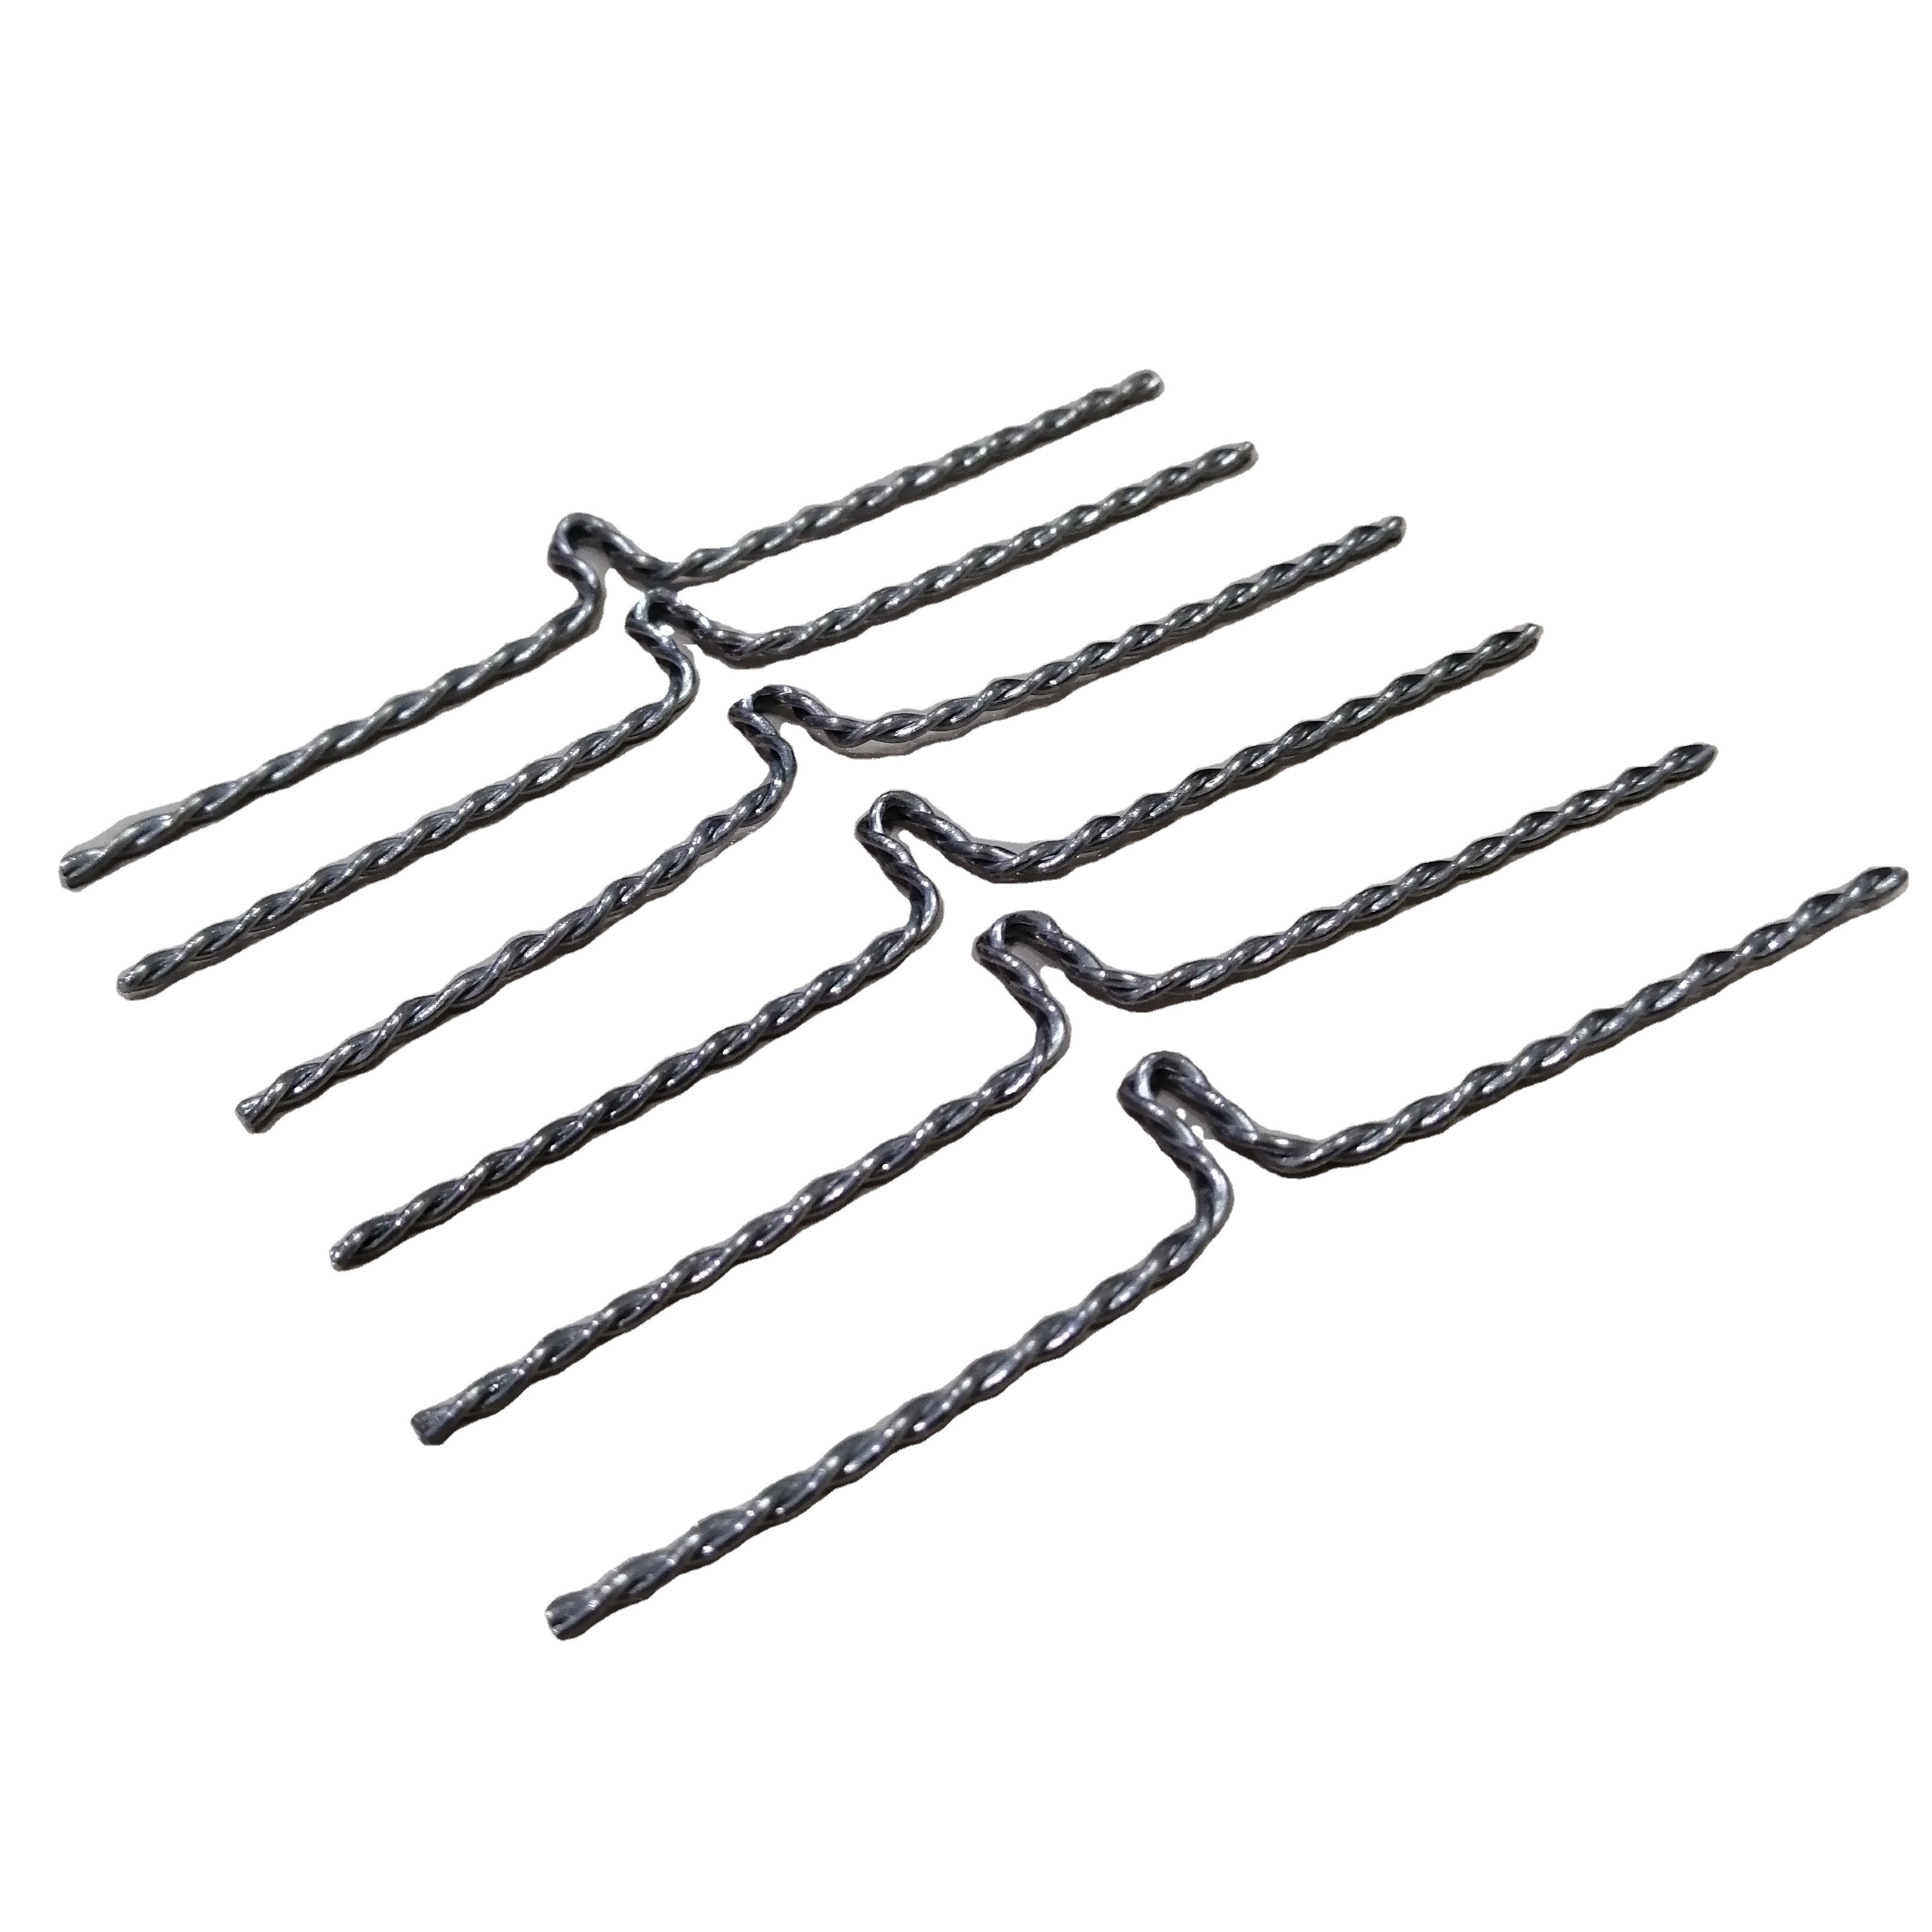 Dia0.635mm 99.95% Purity Wal1 Twisted Tungsten Wire Heater